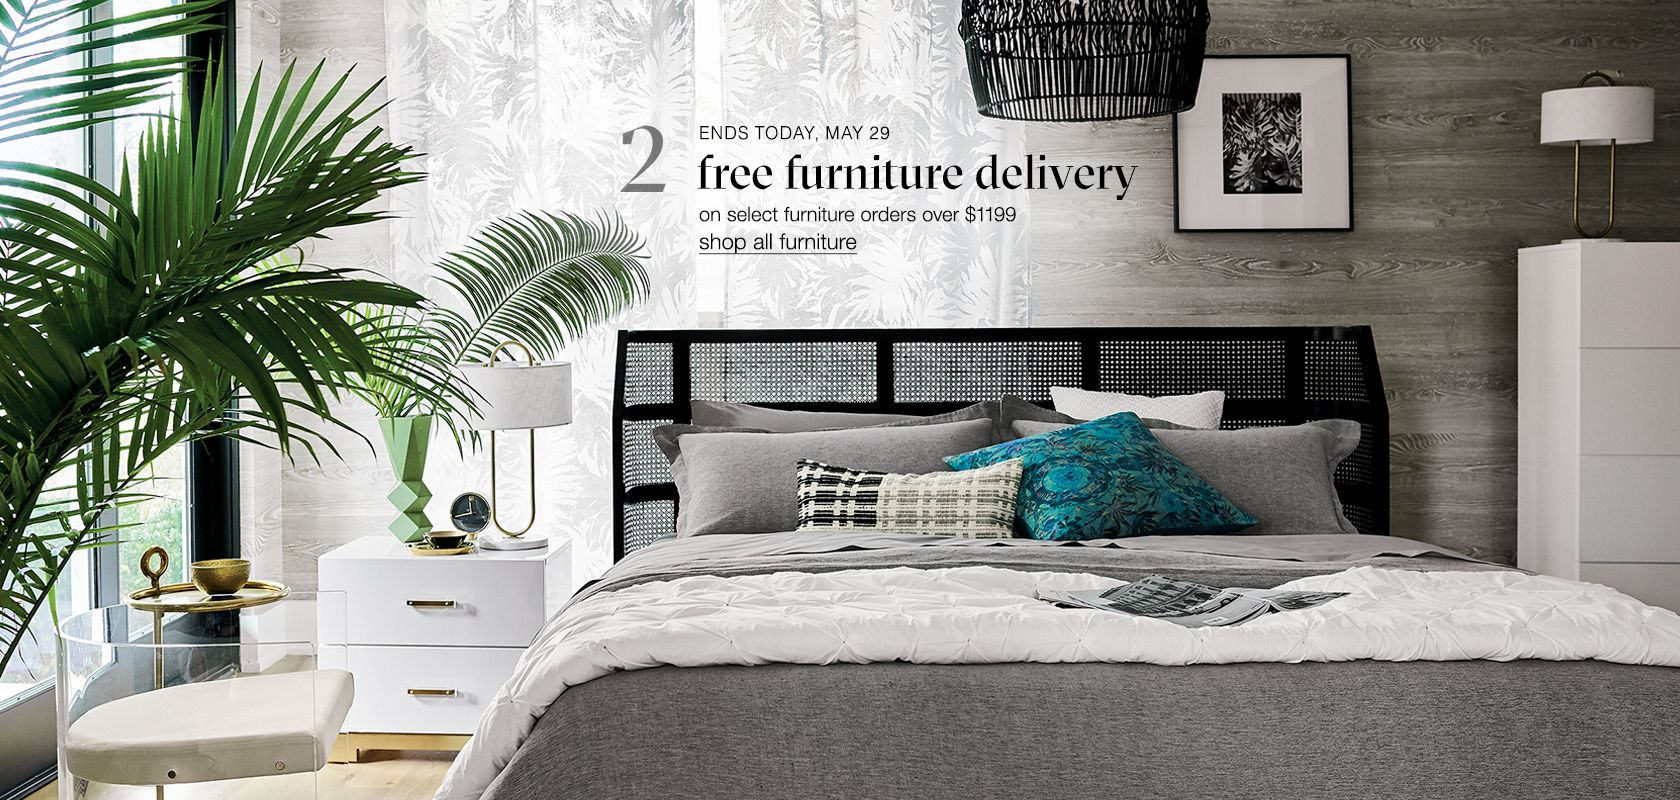 free furniture delivery on select furniture orders over $1199